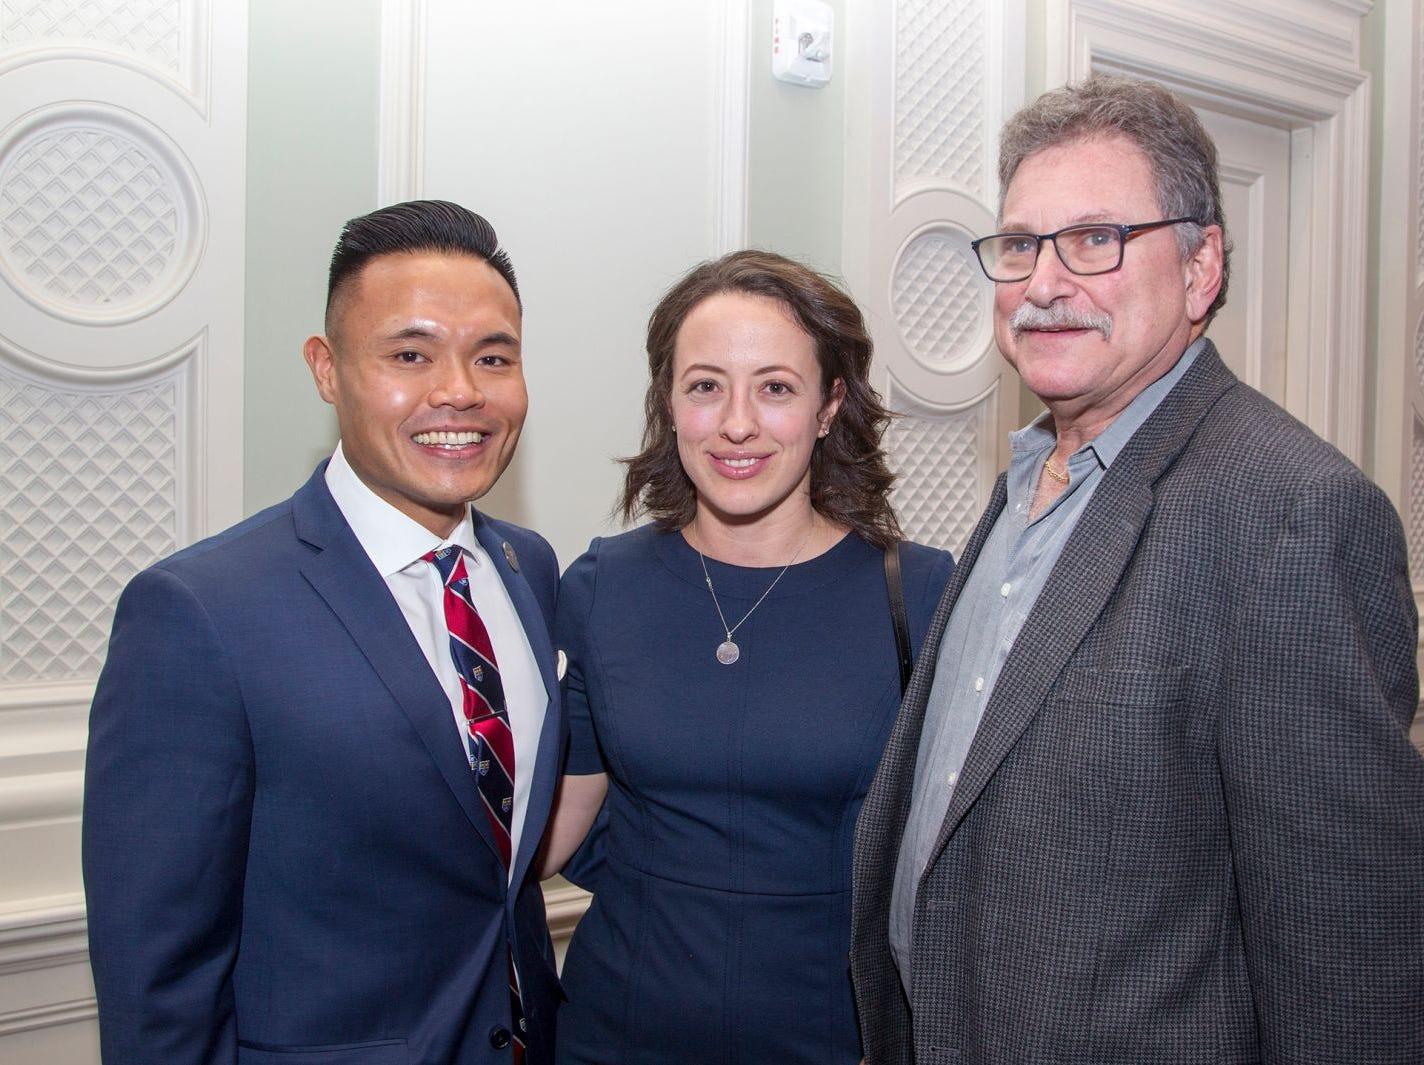 Dr. Rico Miguel Viseras, Eva Viseras, Dr. Ritchard Rosen. Englewood Health held its annual Medical Staff Recognition Dinner at Rockliegh Country Club. 01/17/2019